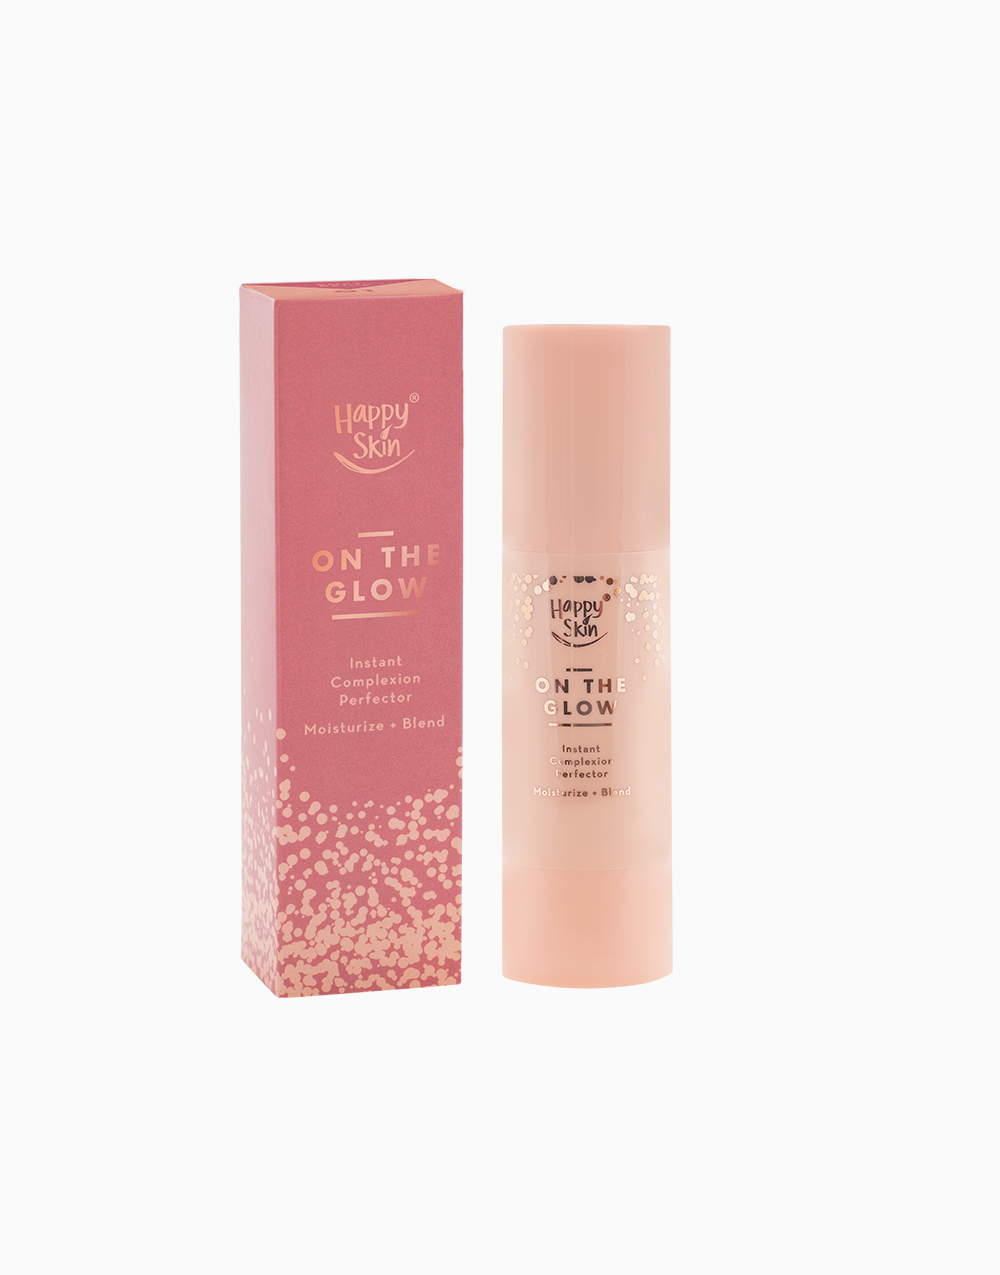 Happy Skin Holidaze On the Glow Exclusive Set in Natural Beige by Happy Skin